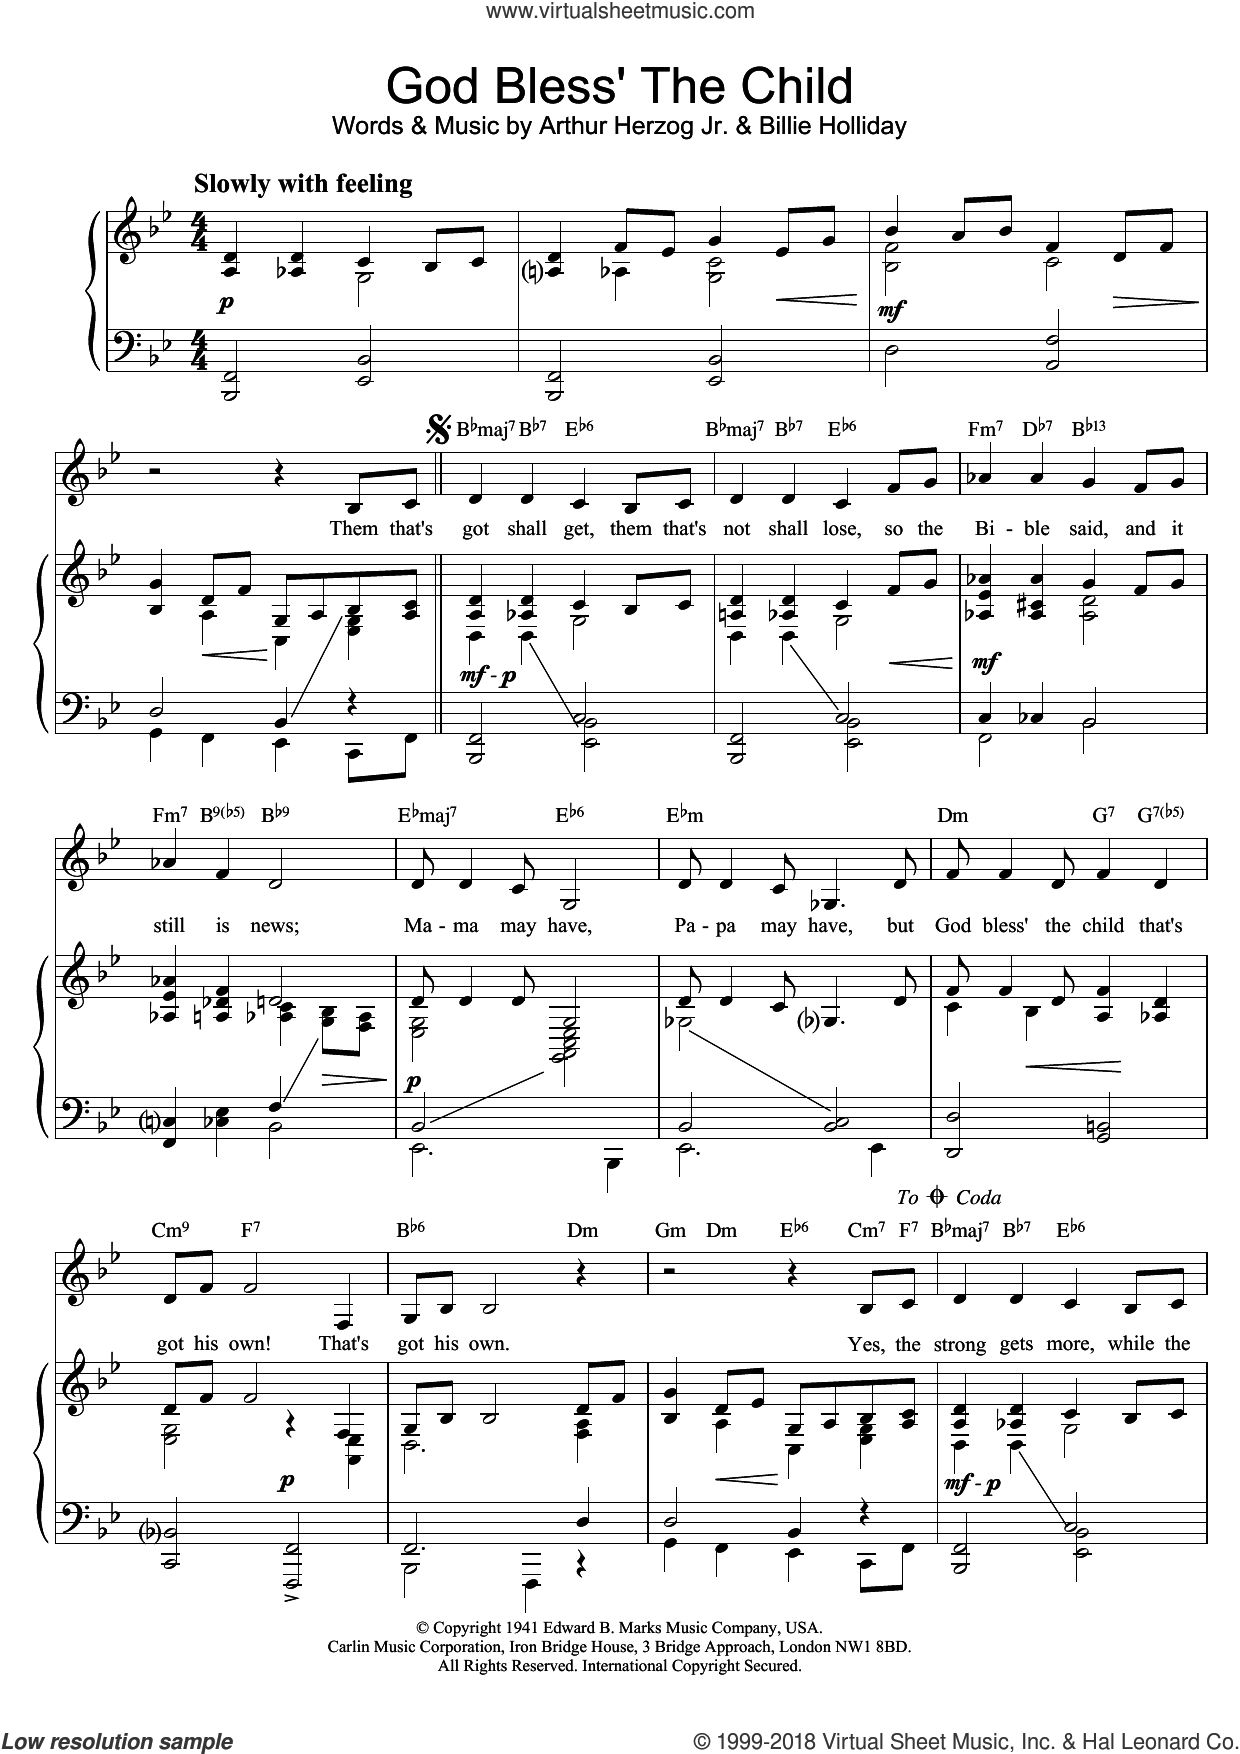 God Bless' The Child sheet music for voice and piano by Billie Holiday and Arthur Herzog Jr., intermediate skill level